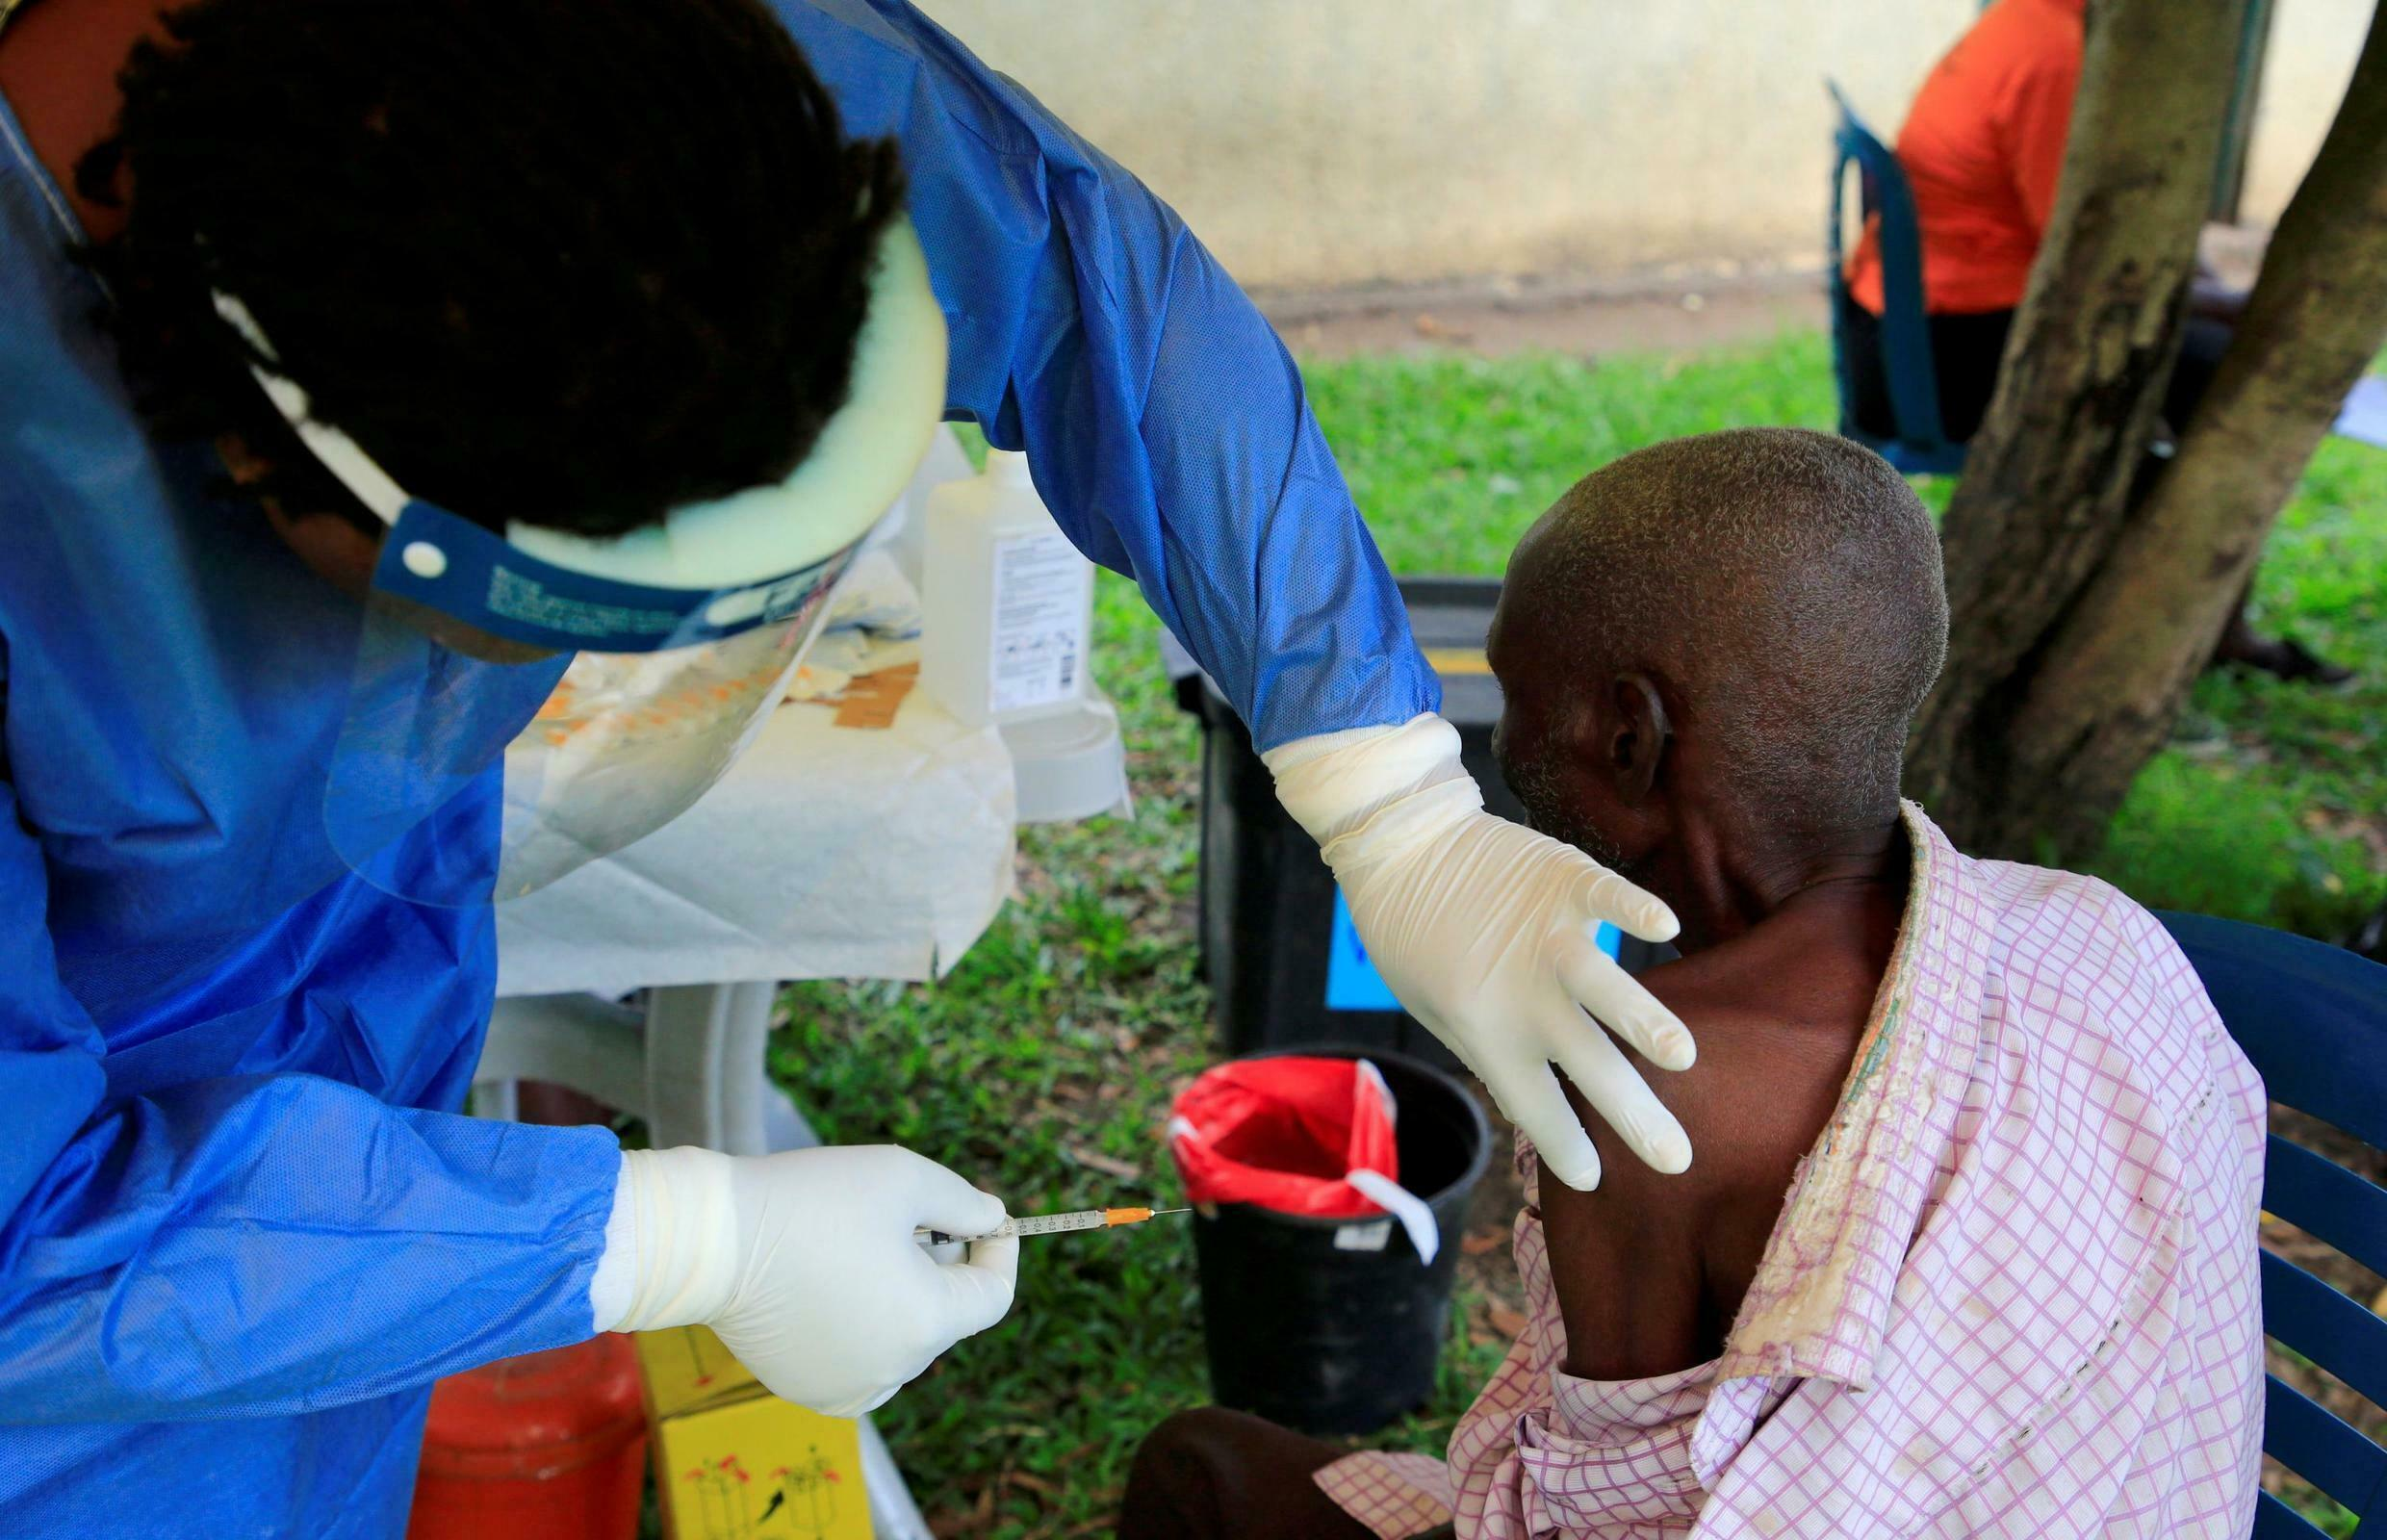 A Ugandan health worker administers ebola vaccine to a man in Kirembo village, near the border with the Democratic Republic of Congo in Kasese district, Uganda June 16, 2019.